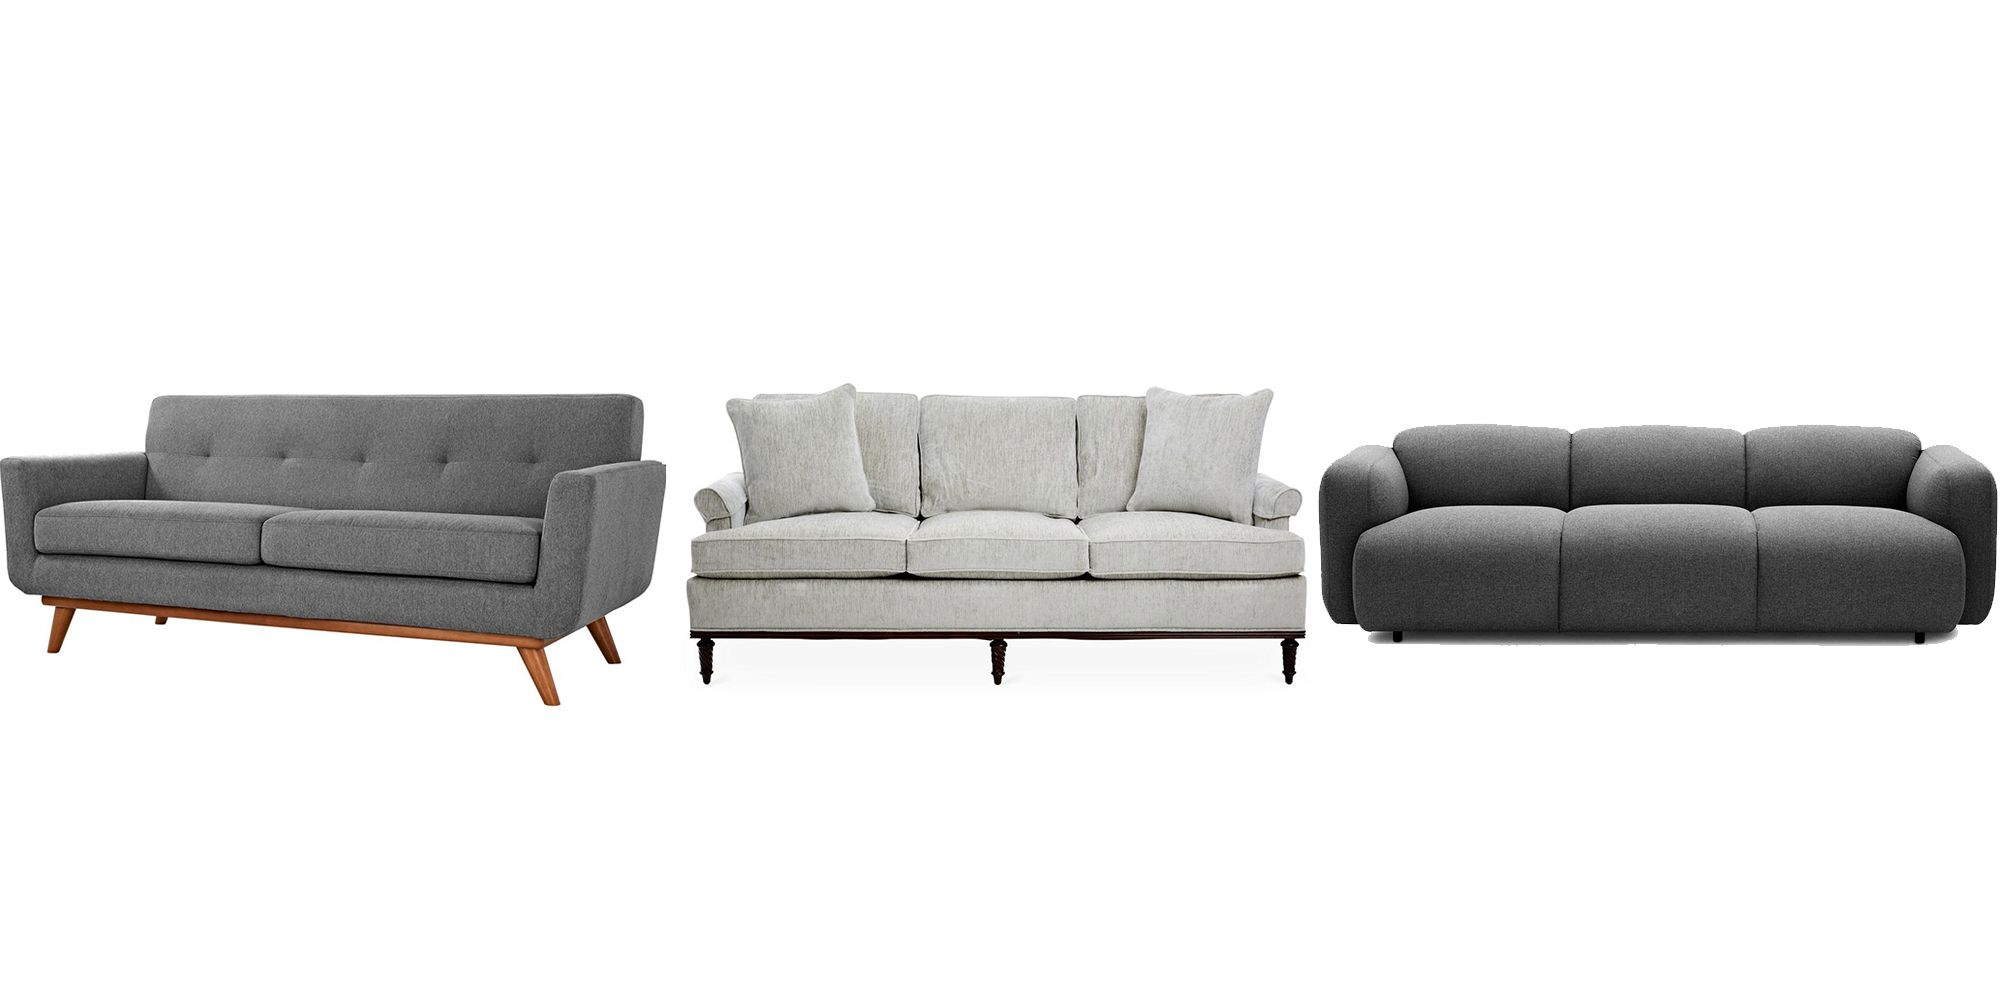 25 Grey Sofa Ideas for Living Room Grey Couches For Sale